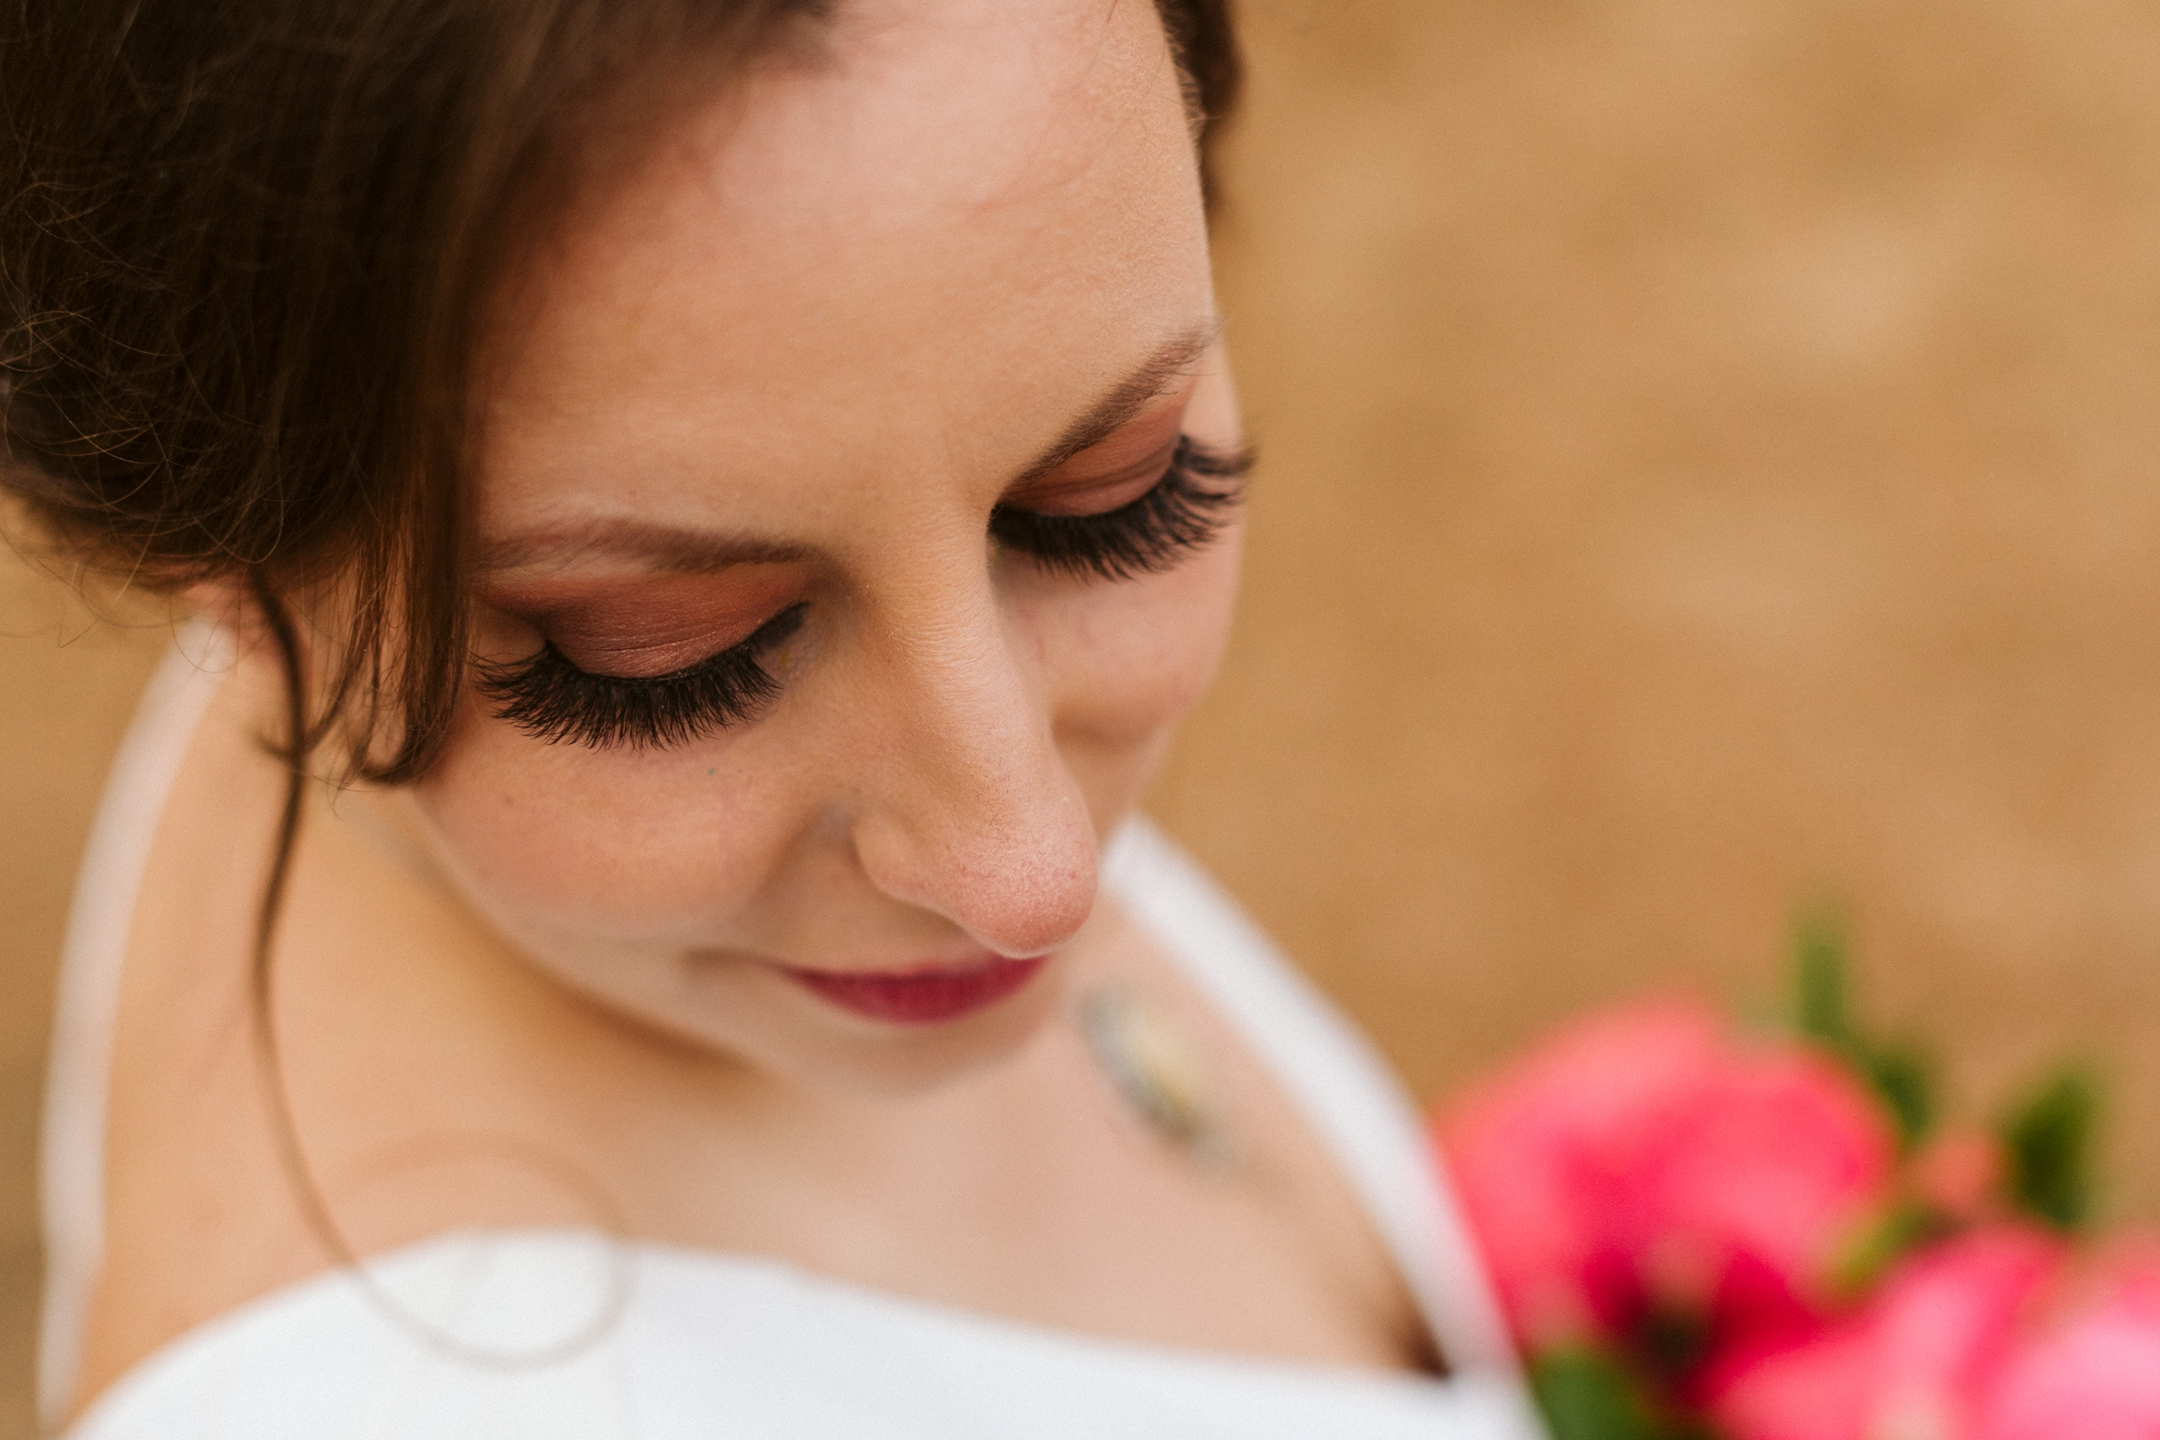 Bridal smoky eyes for this Texas wedding - La Muse Beauty Salon